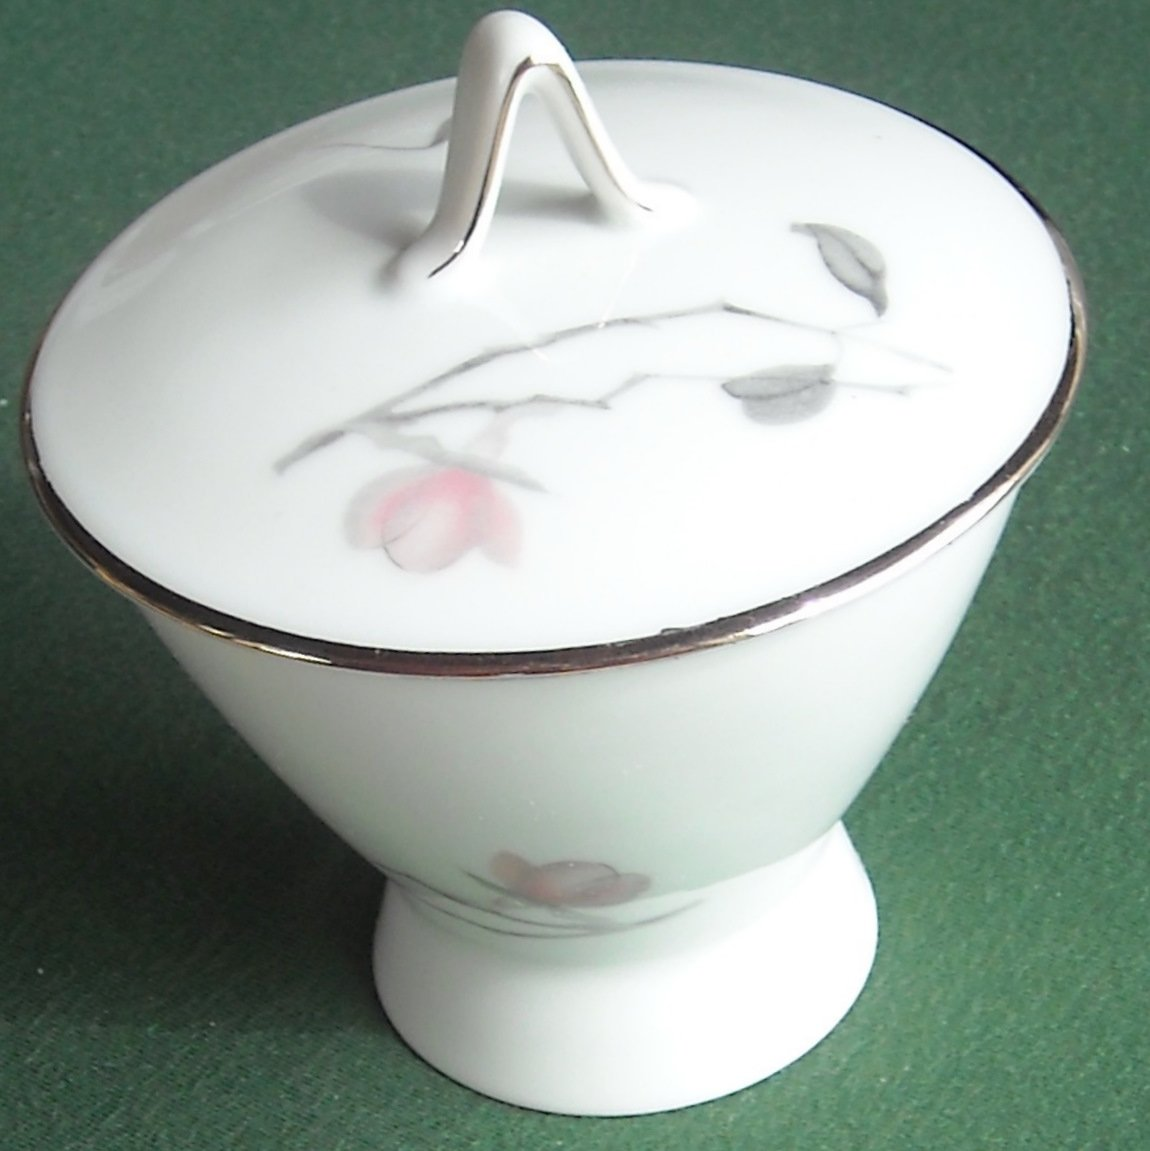 Rosenthal Germany China Pattern Japanese Quince 3725 Round Sugar Bowl With Lid